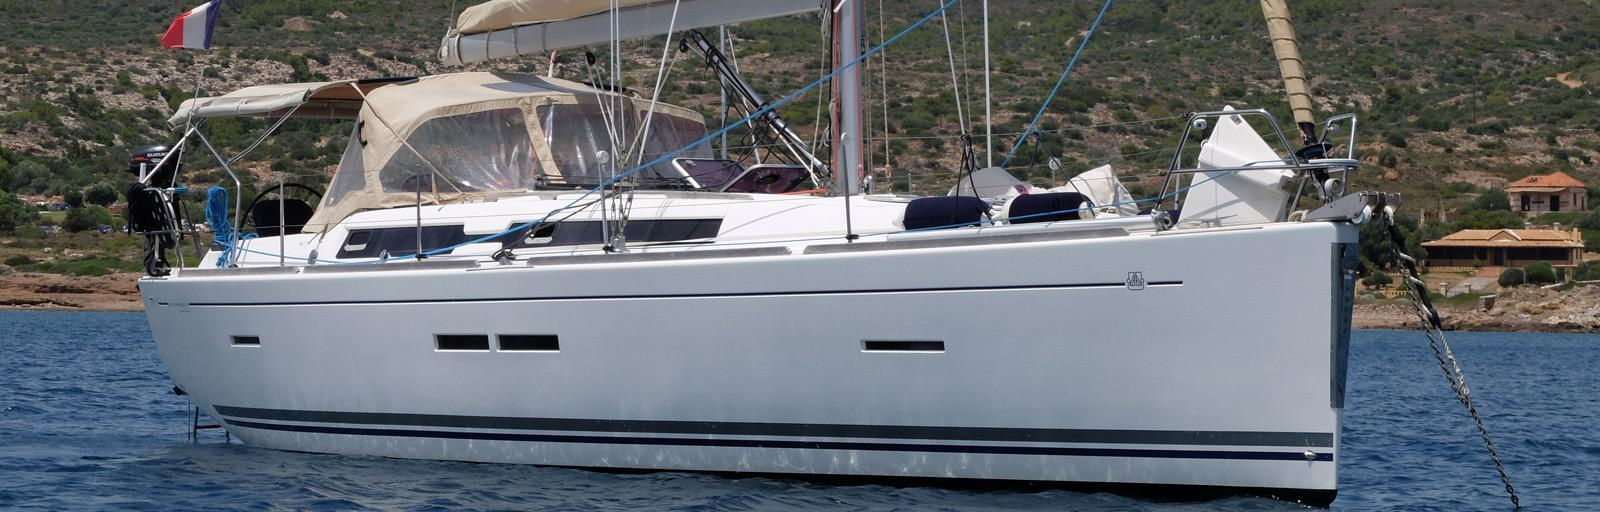 AYC Yachtbroker - Dufour 405 Grand Large